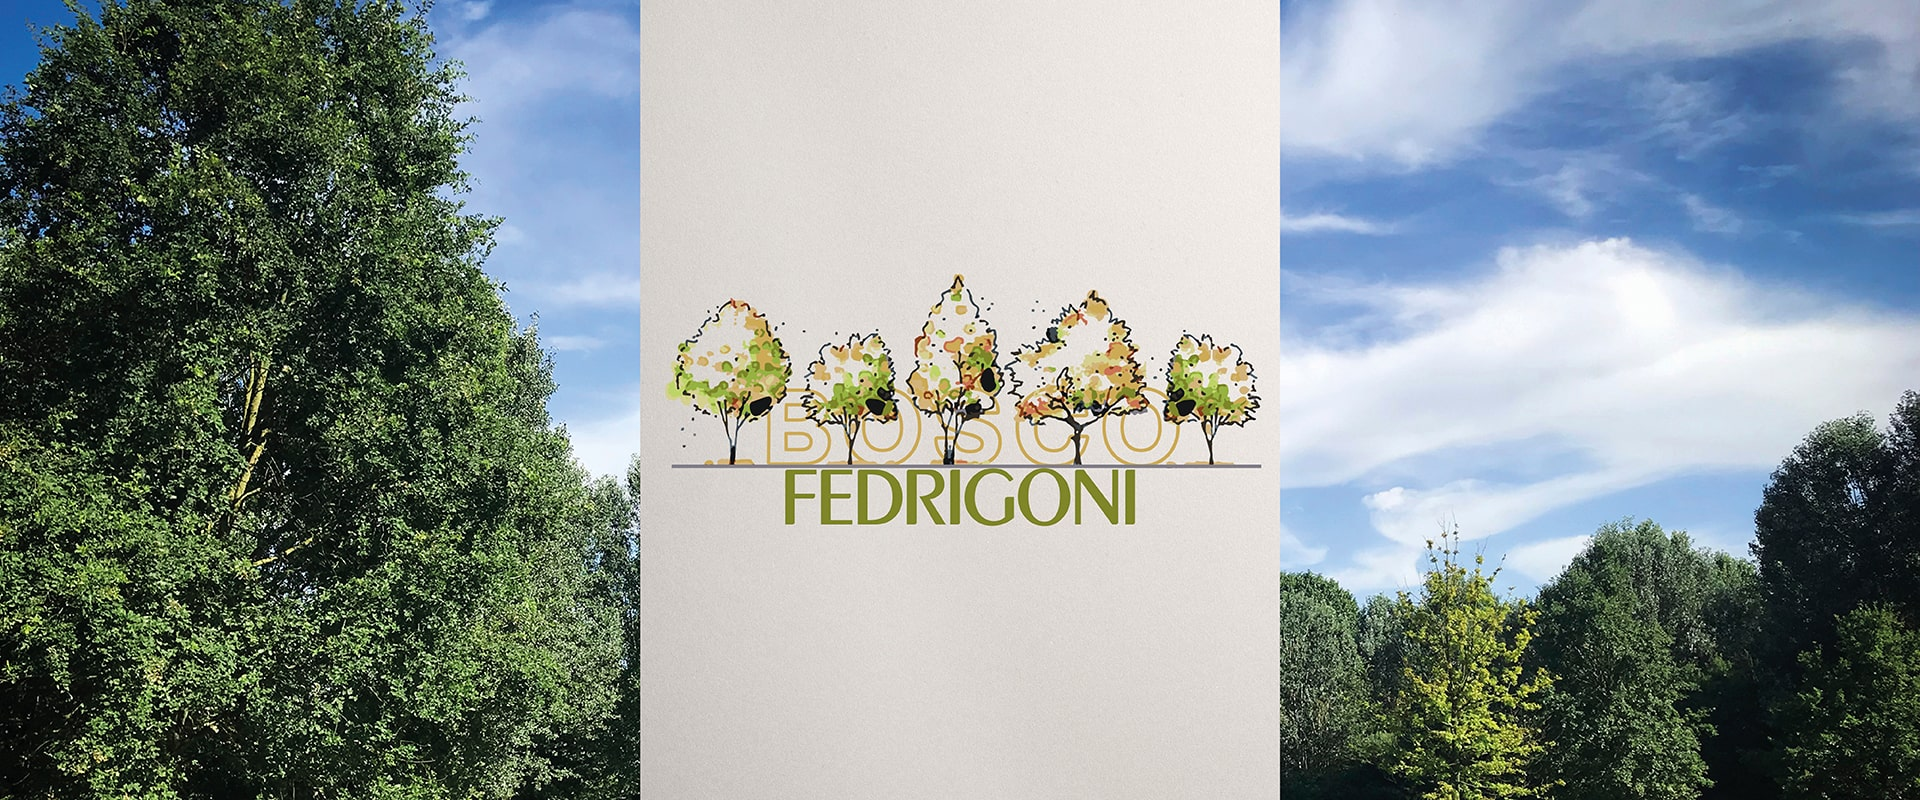 fedrigoni wood